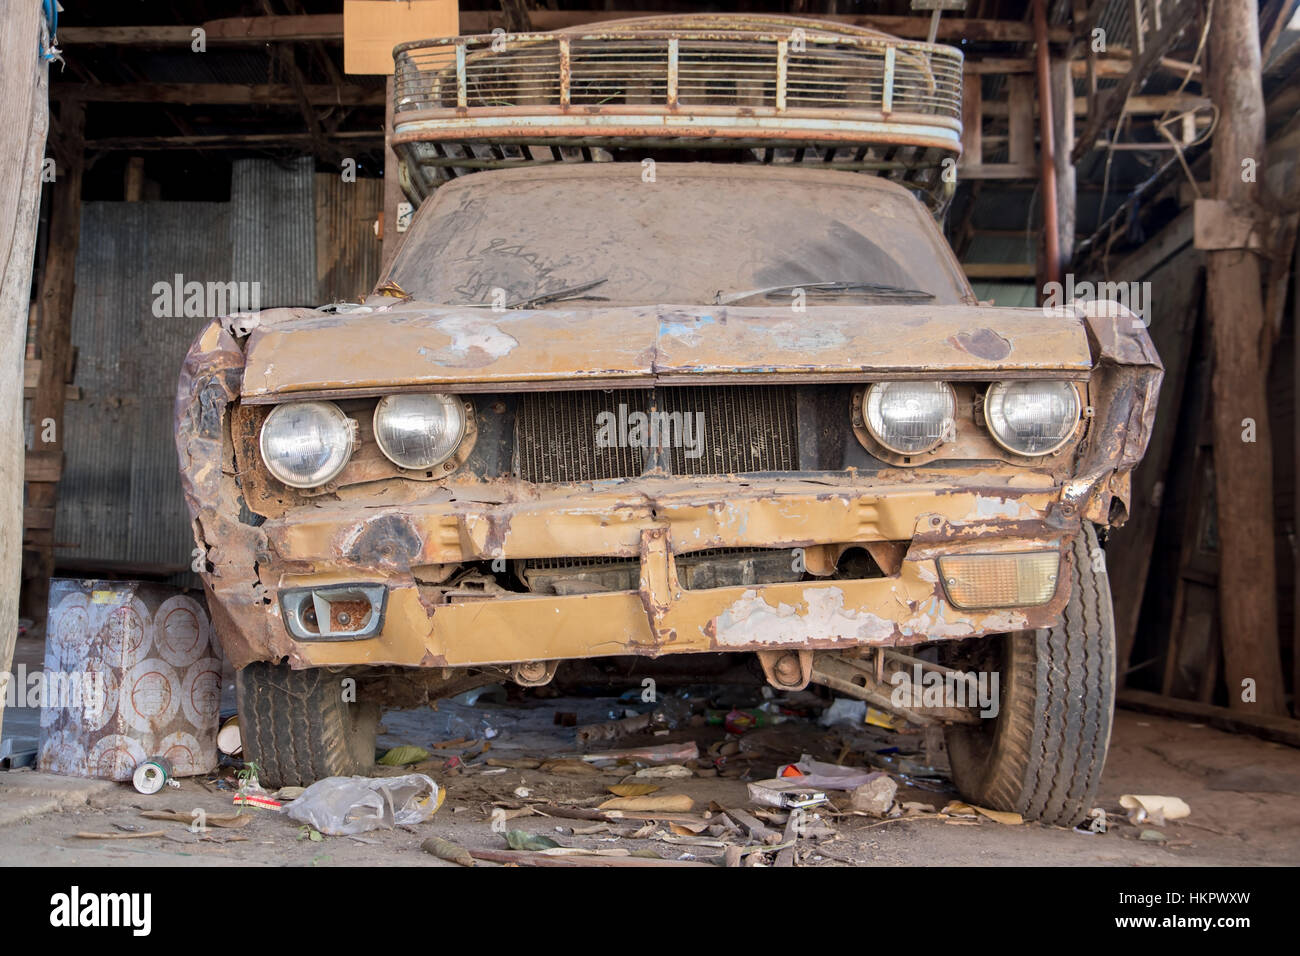 The old dusty car parked in the garage. Broken car, front view. - Stock Image